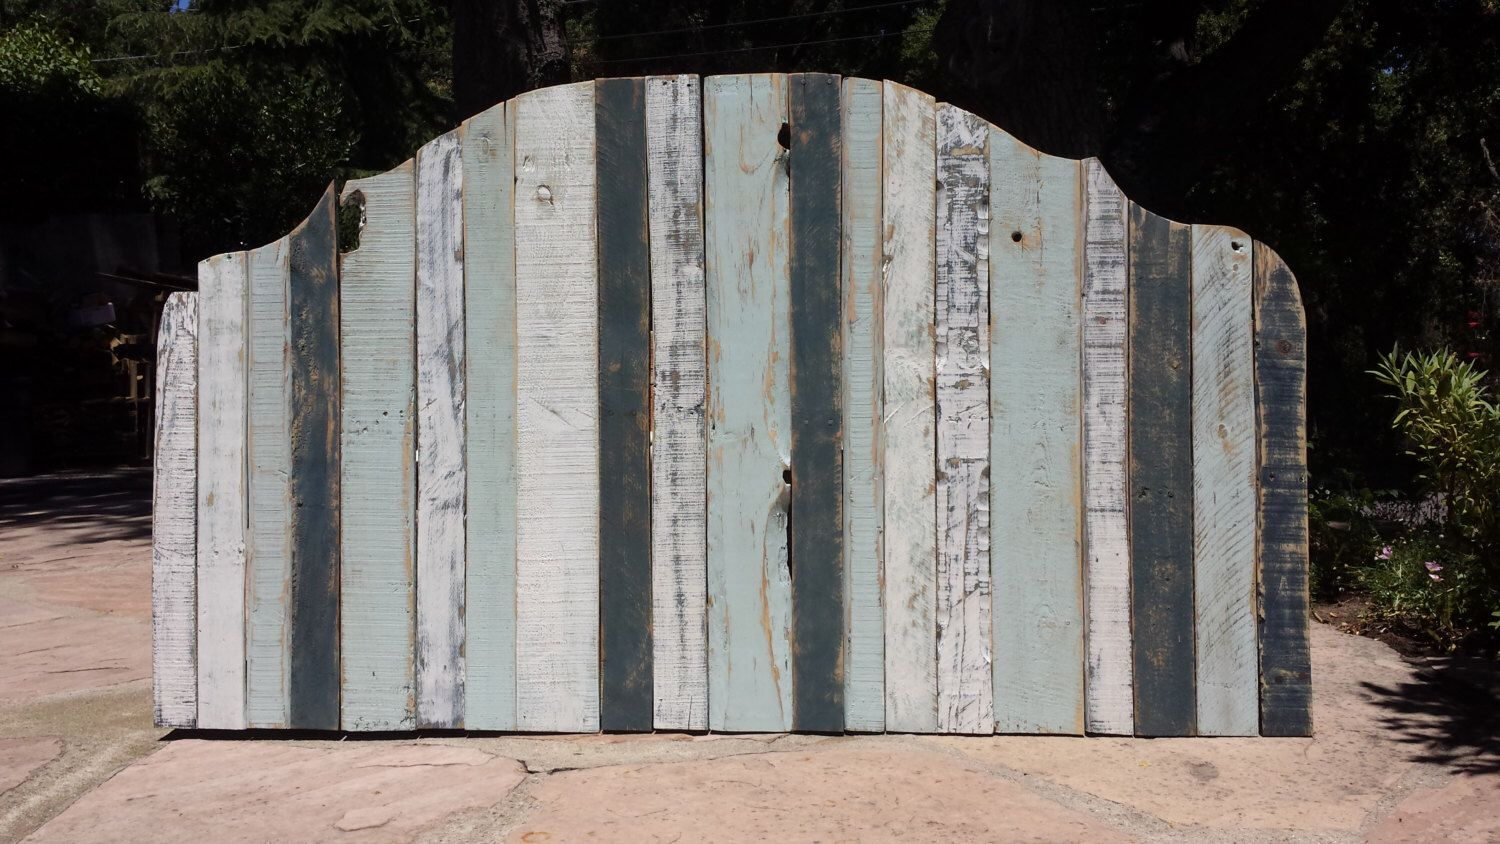 Standard or California King pallet wood headboard - Distressed Paint by SecondLifeWoodWorks on Etsy https://www.etsy.com/listing/182734037/standard-or-california-king-pallet-wood